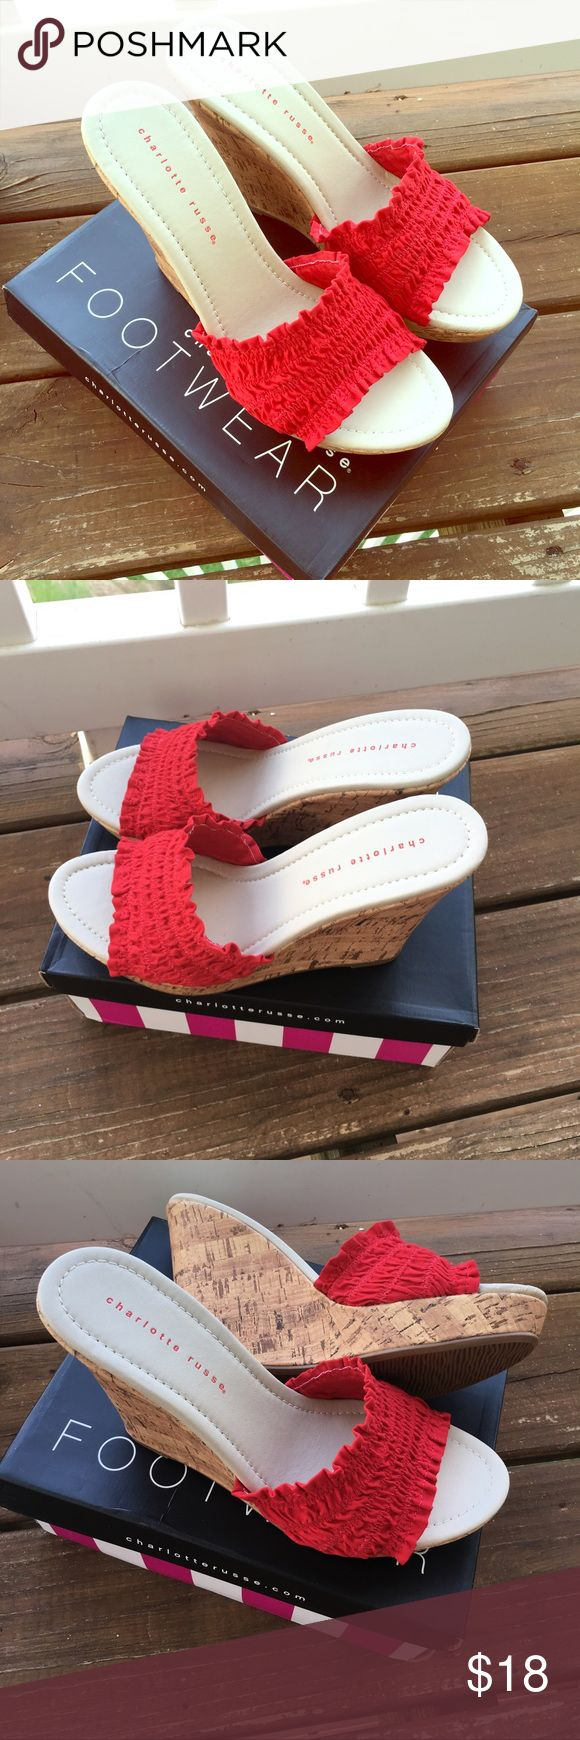 NWT 💖 Charlotte Russe Wedges! Cute Charlotte Russe Shoes! Perfect pop of color with any outfit or dress. Never worn still in box! Bundle to save 25%! 🎀 Charlotte Russe Shoes Wedges